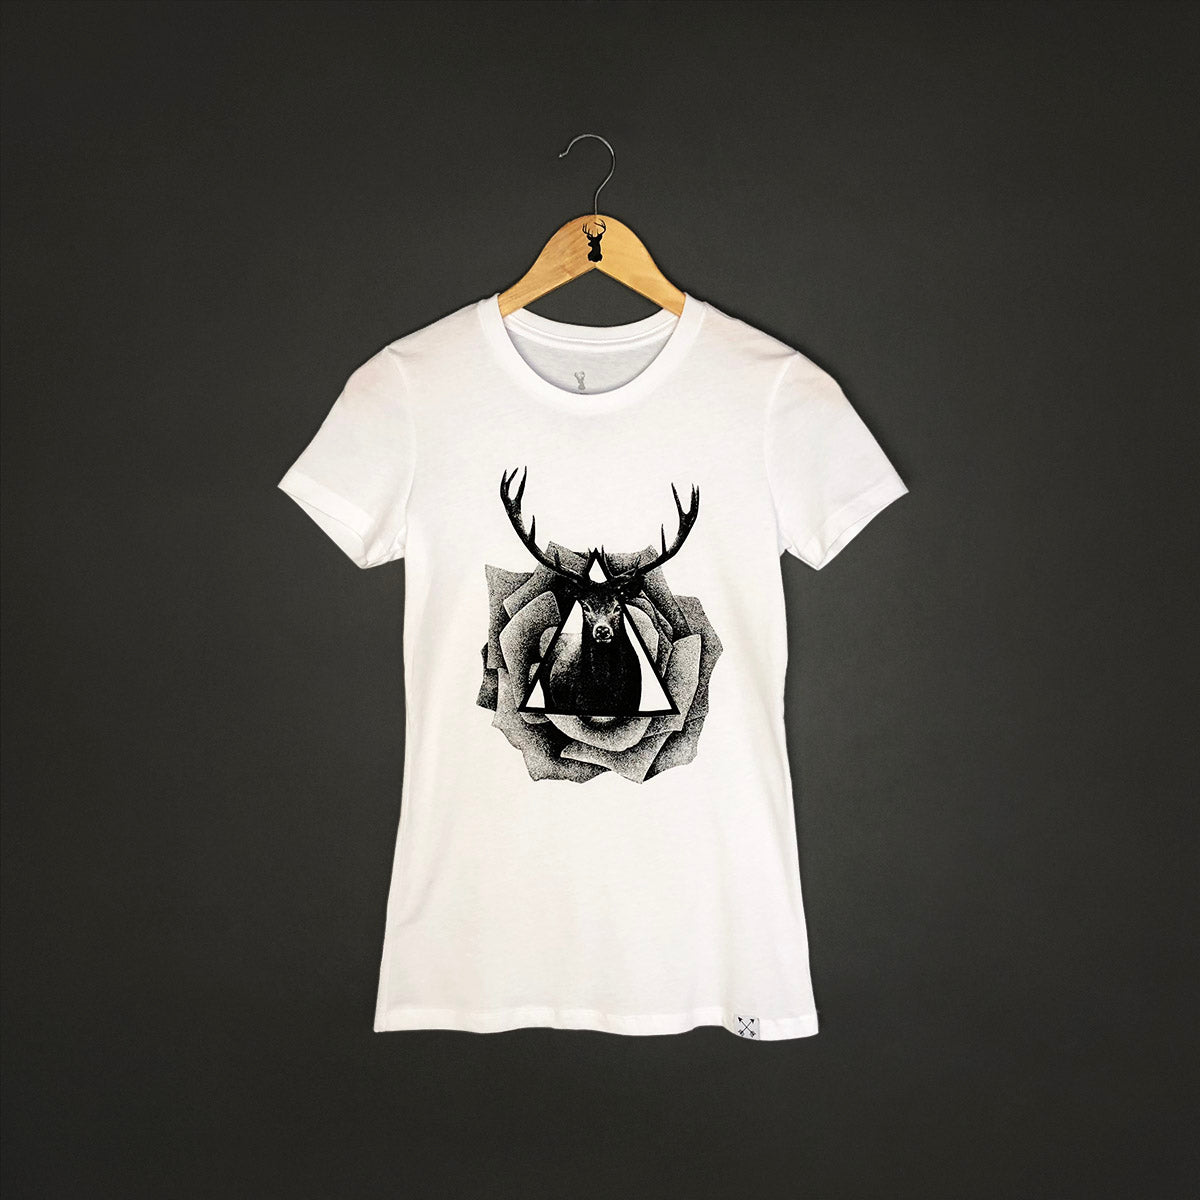 raindeer oh deer tank top tattoo clothing t-shirt